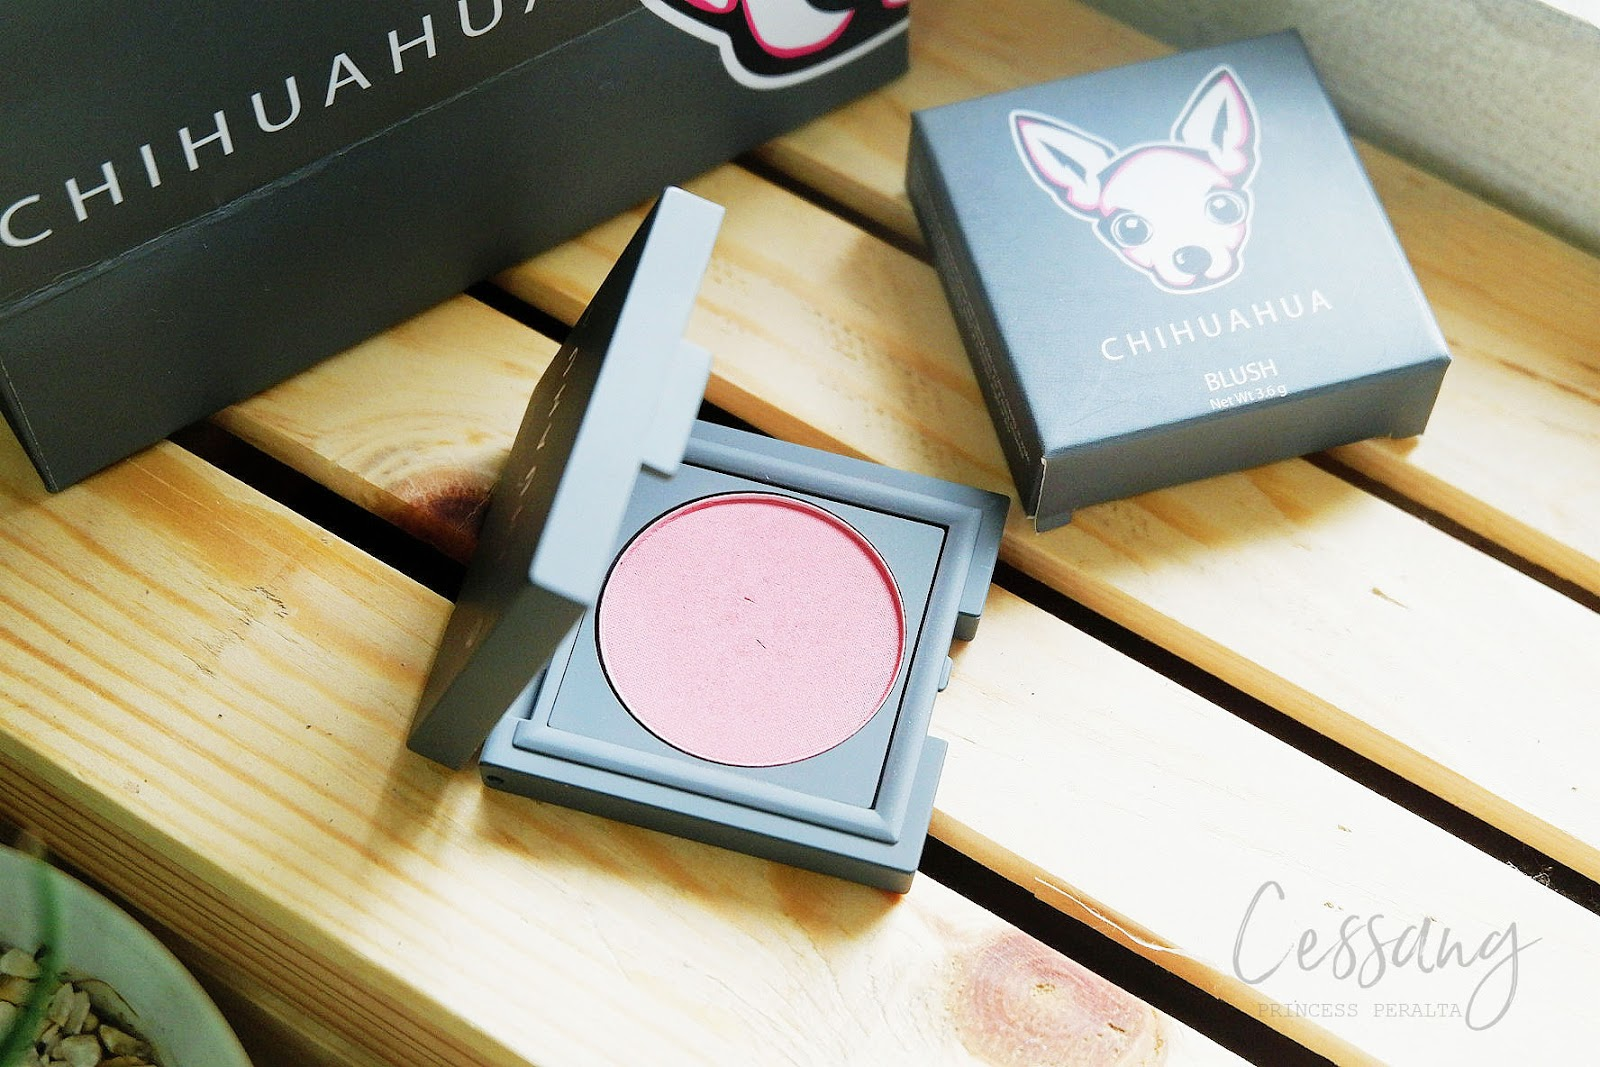 CHIHUAHUA COSMETICS: HALF THE PRICE, HALF THE SIZE! IS IT WORTH IT?